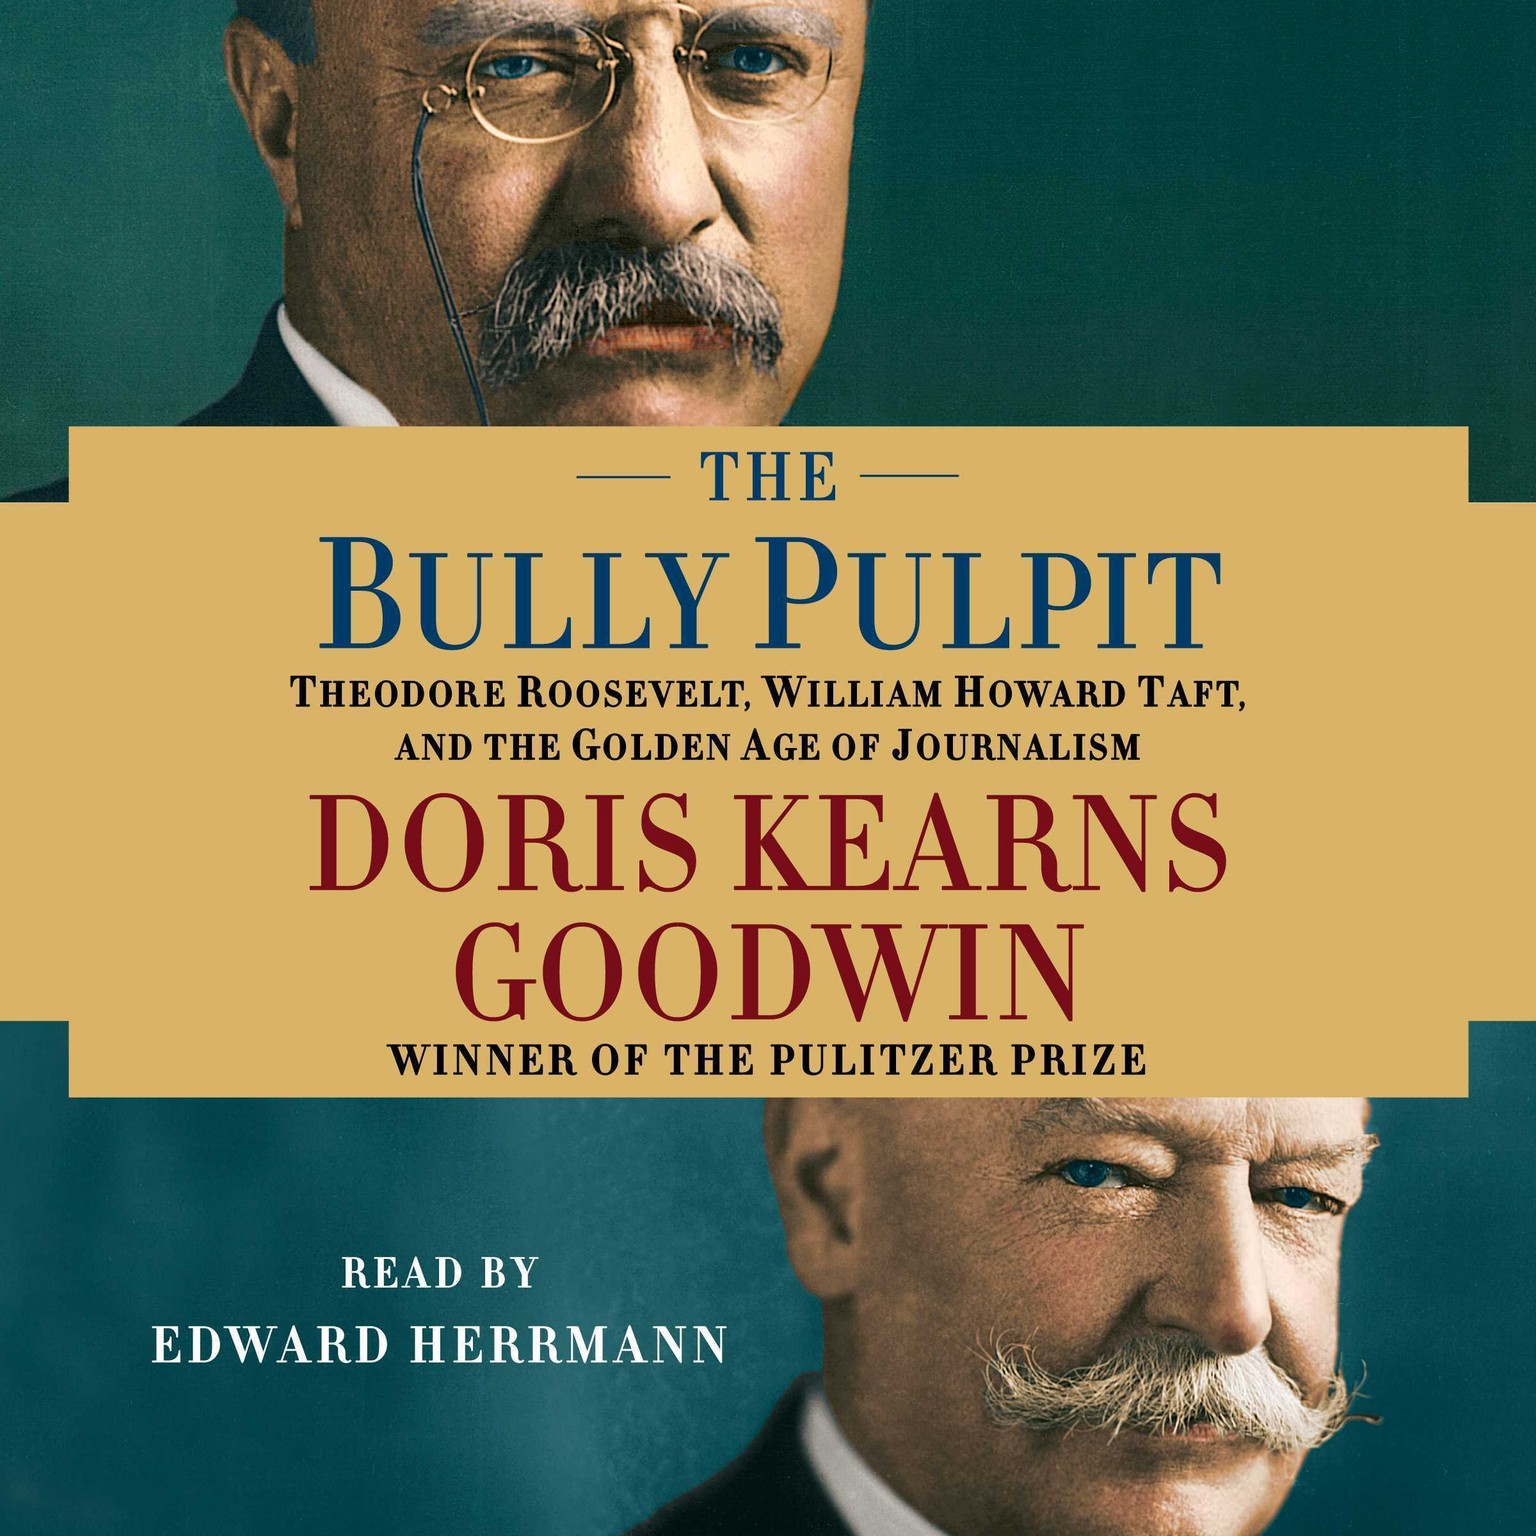 Printable The Bully Pulpit (Abridged): Theodore Roosevelt, William Howard Taft, and the Golden Age of Journalism Audiobook Cover Art